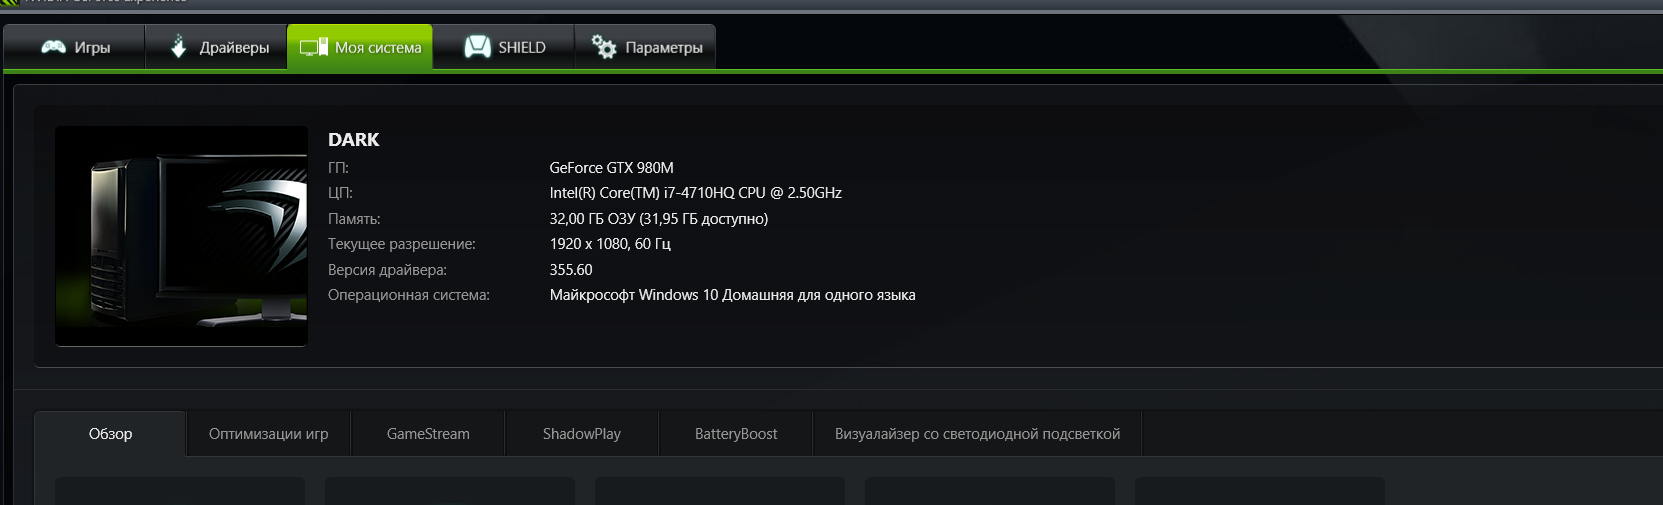 2015-08-29 13-04-02 NVIDIA GeForce Experience.png